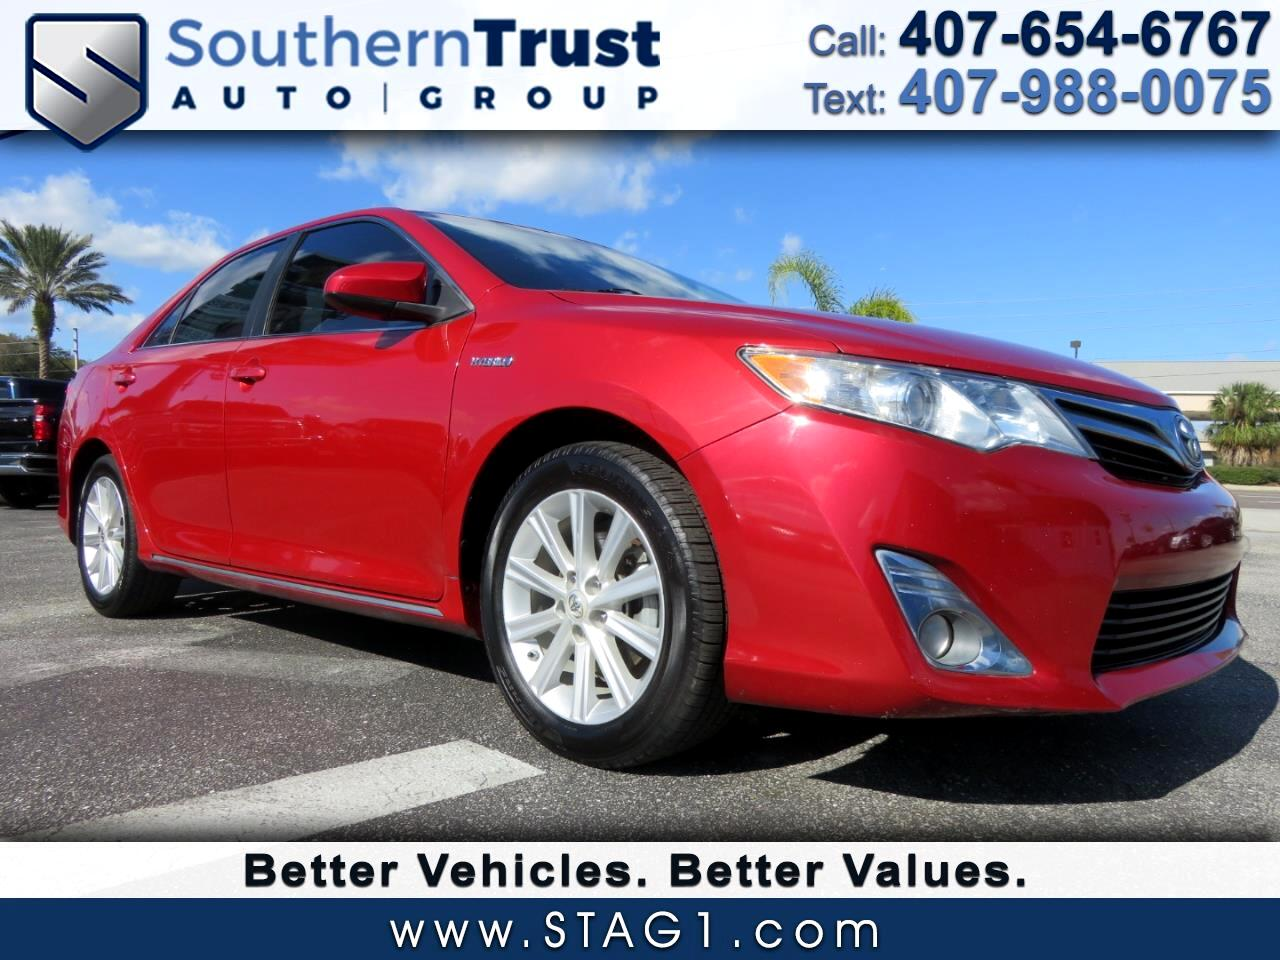 Toyota Camry Hybrid 4dr Sdn XLE (Natl) 2012